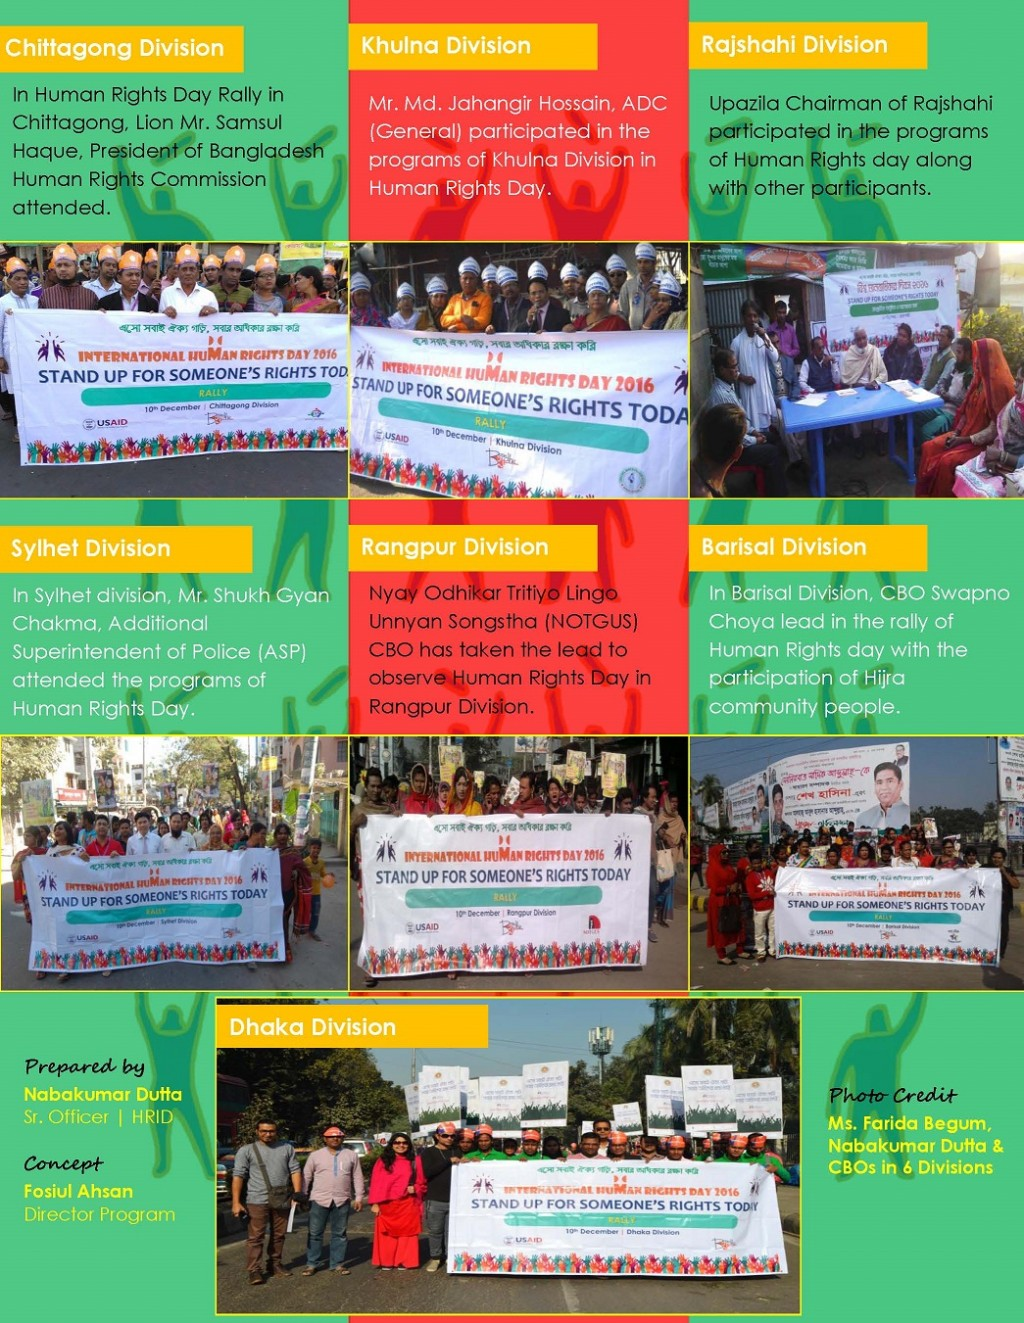 ebulletin_international-human-rights-day-2016_page_2